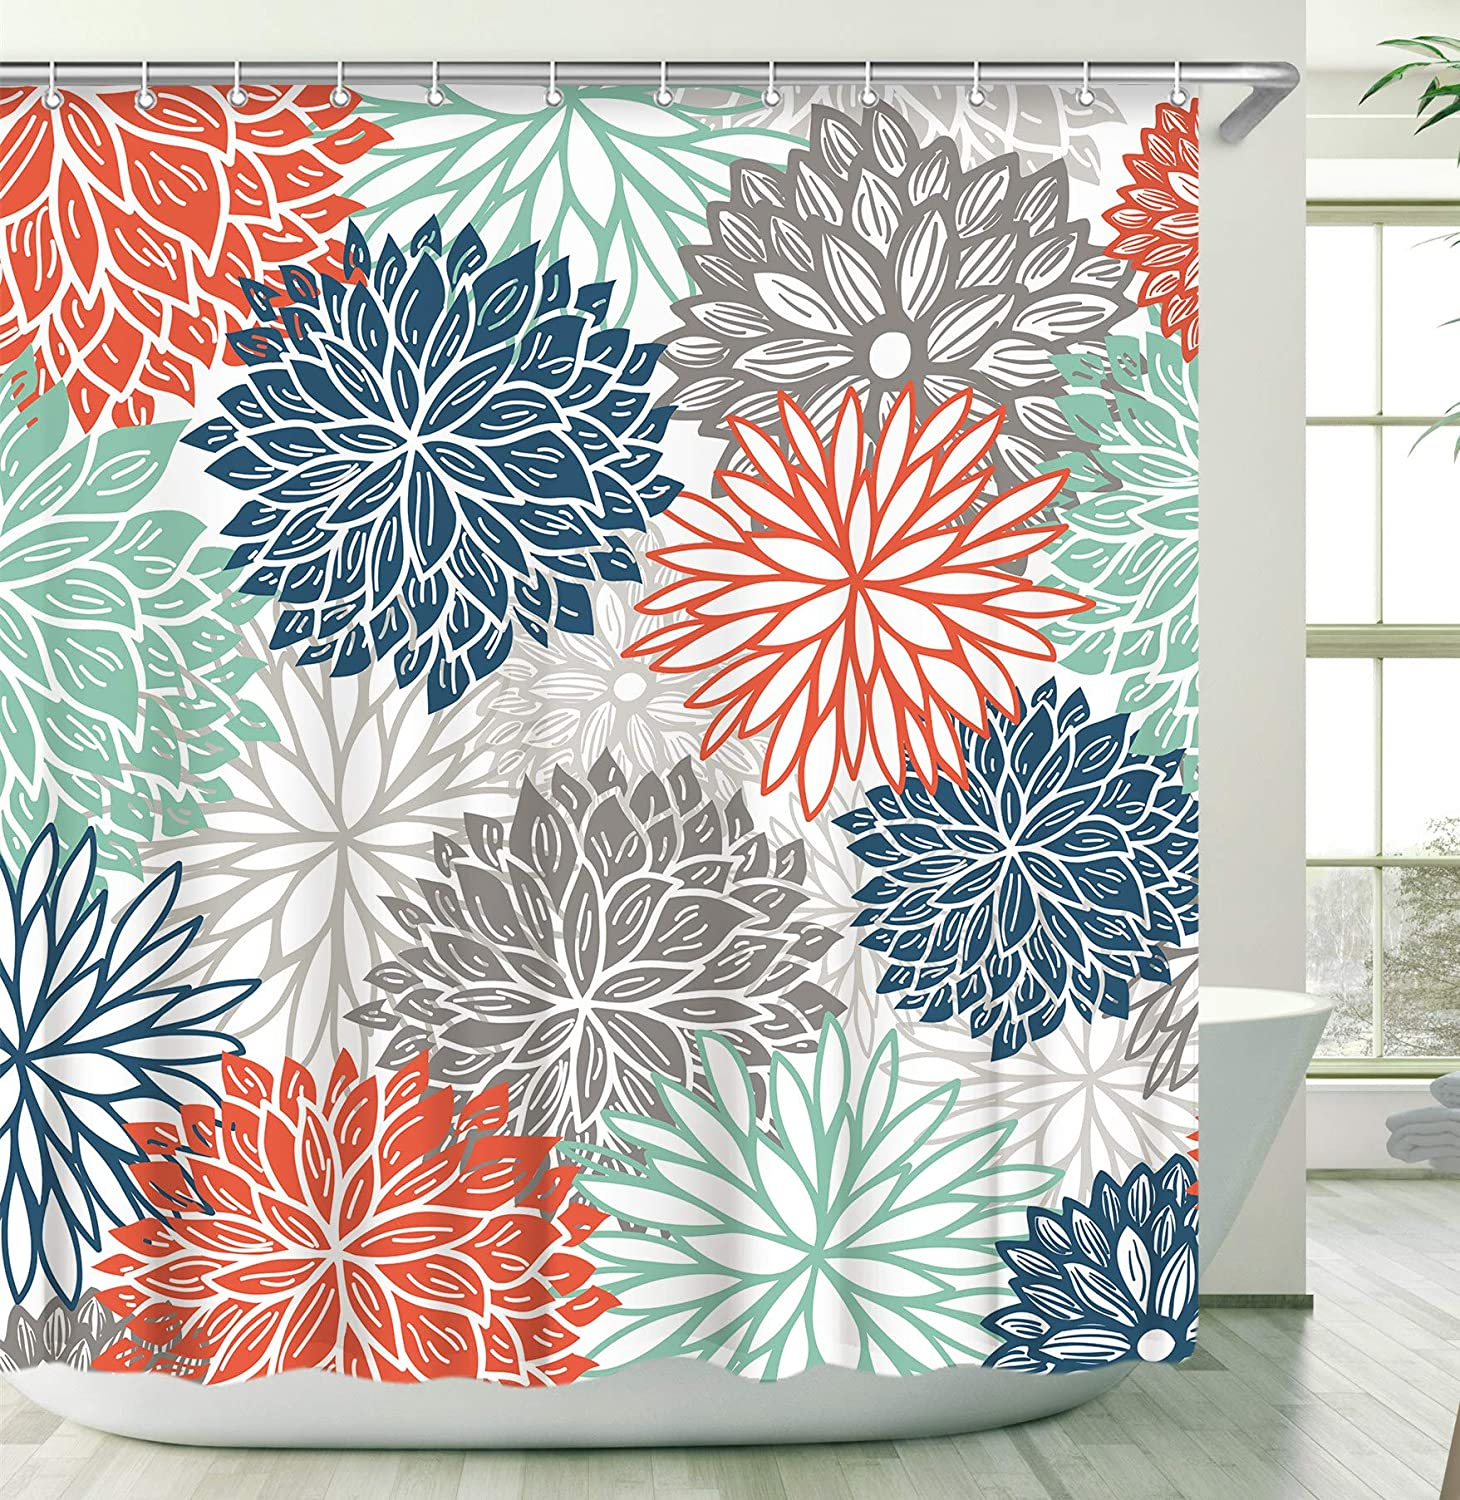 Stacy Fay Floral Shower Curtain, Dahila Shower Curtains Set with 12 Hooks, Waterproof Fabric Bathroom Curtain Flowers, 72 x 72 Inch, Red Blue Green Grey Dahlia Flowers Shower Curtains